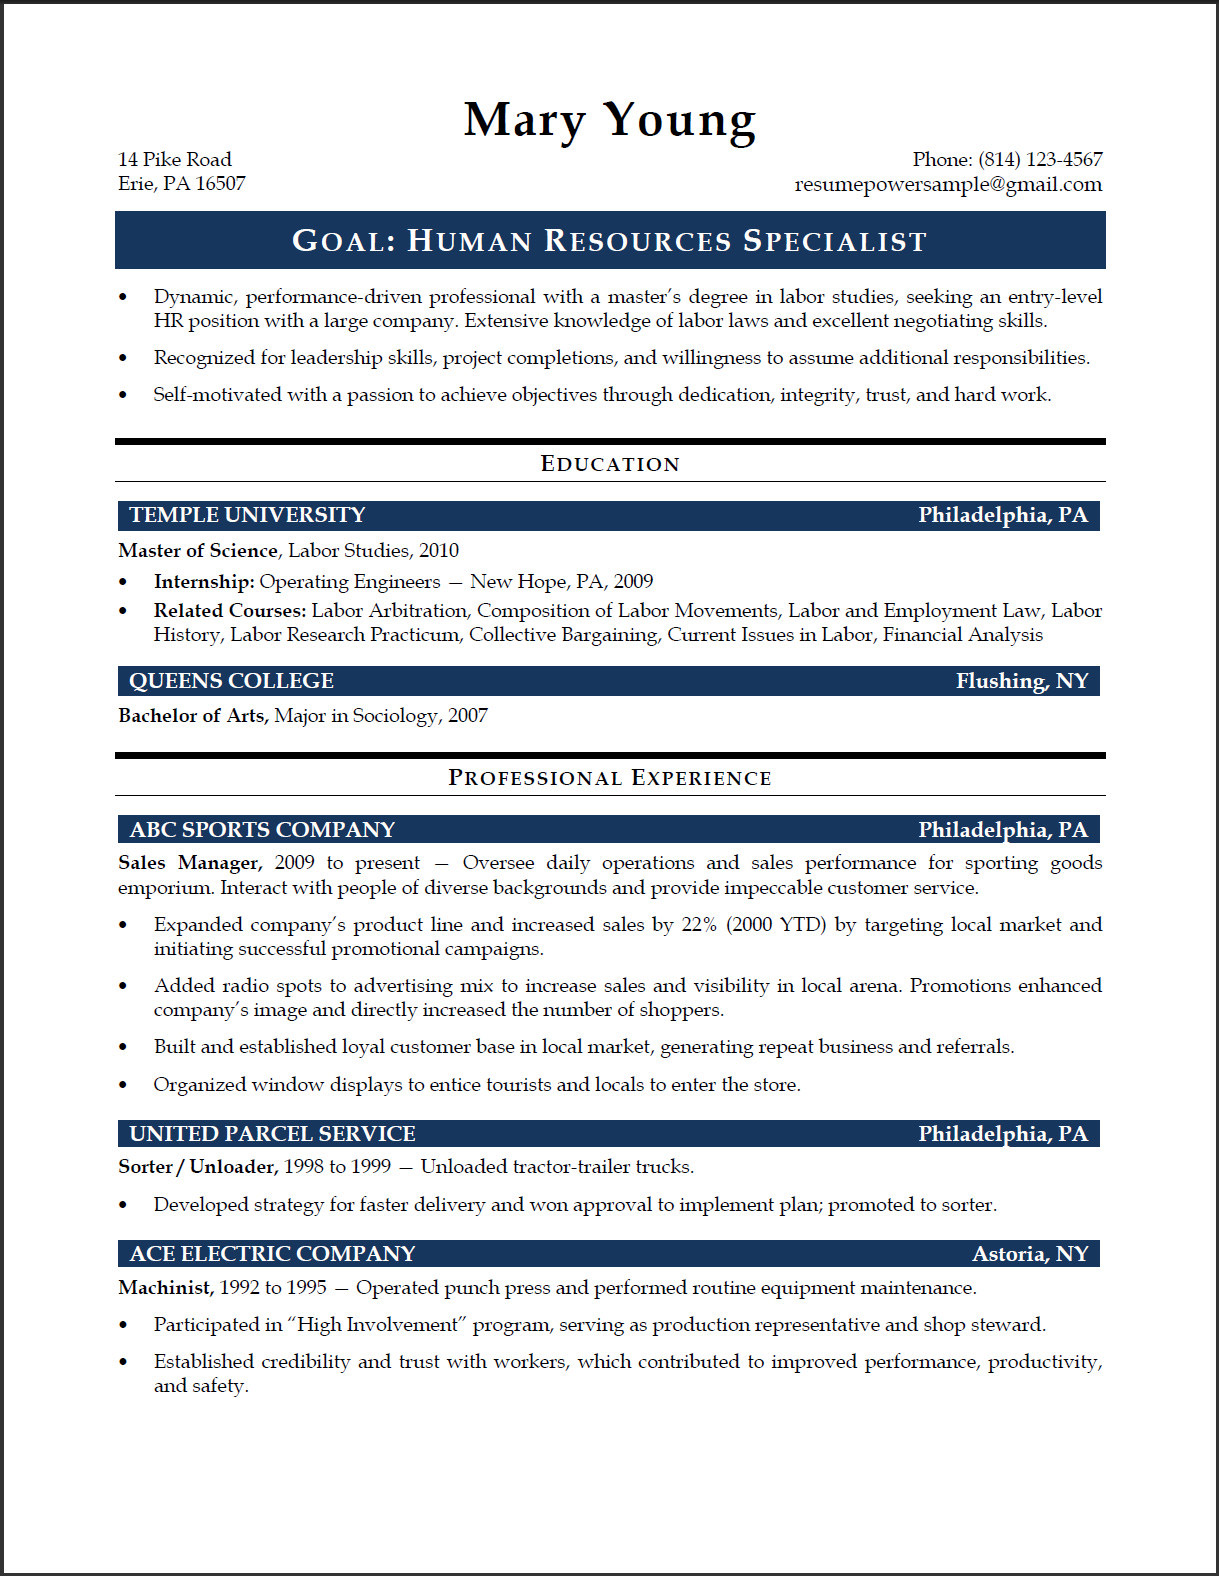 HR Specialist Sample Resume | ResumePower